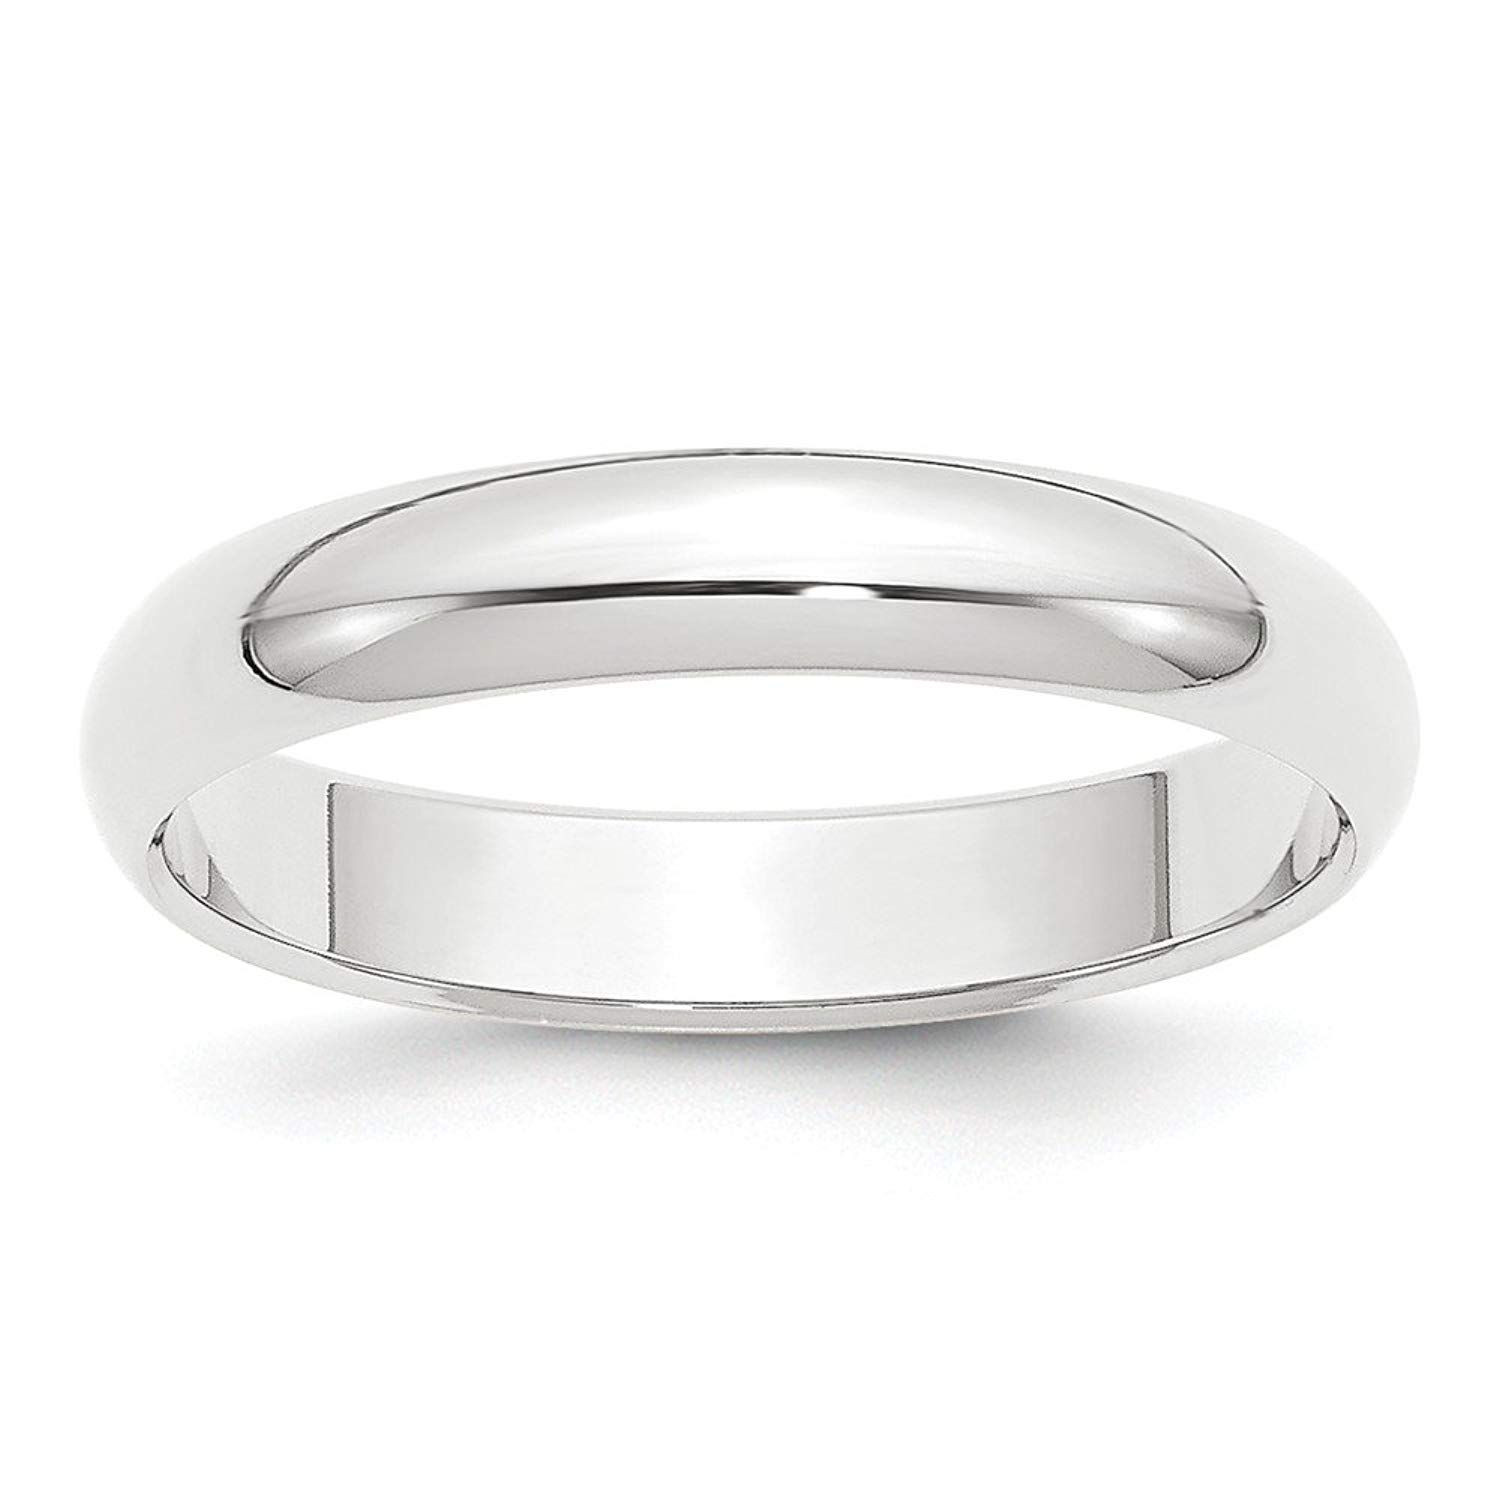 Jewelry Stores Network 8mm Flat Step Edge Sterling Silver Wedding Band Ring